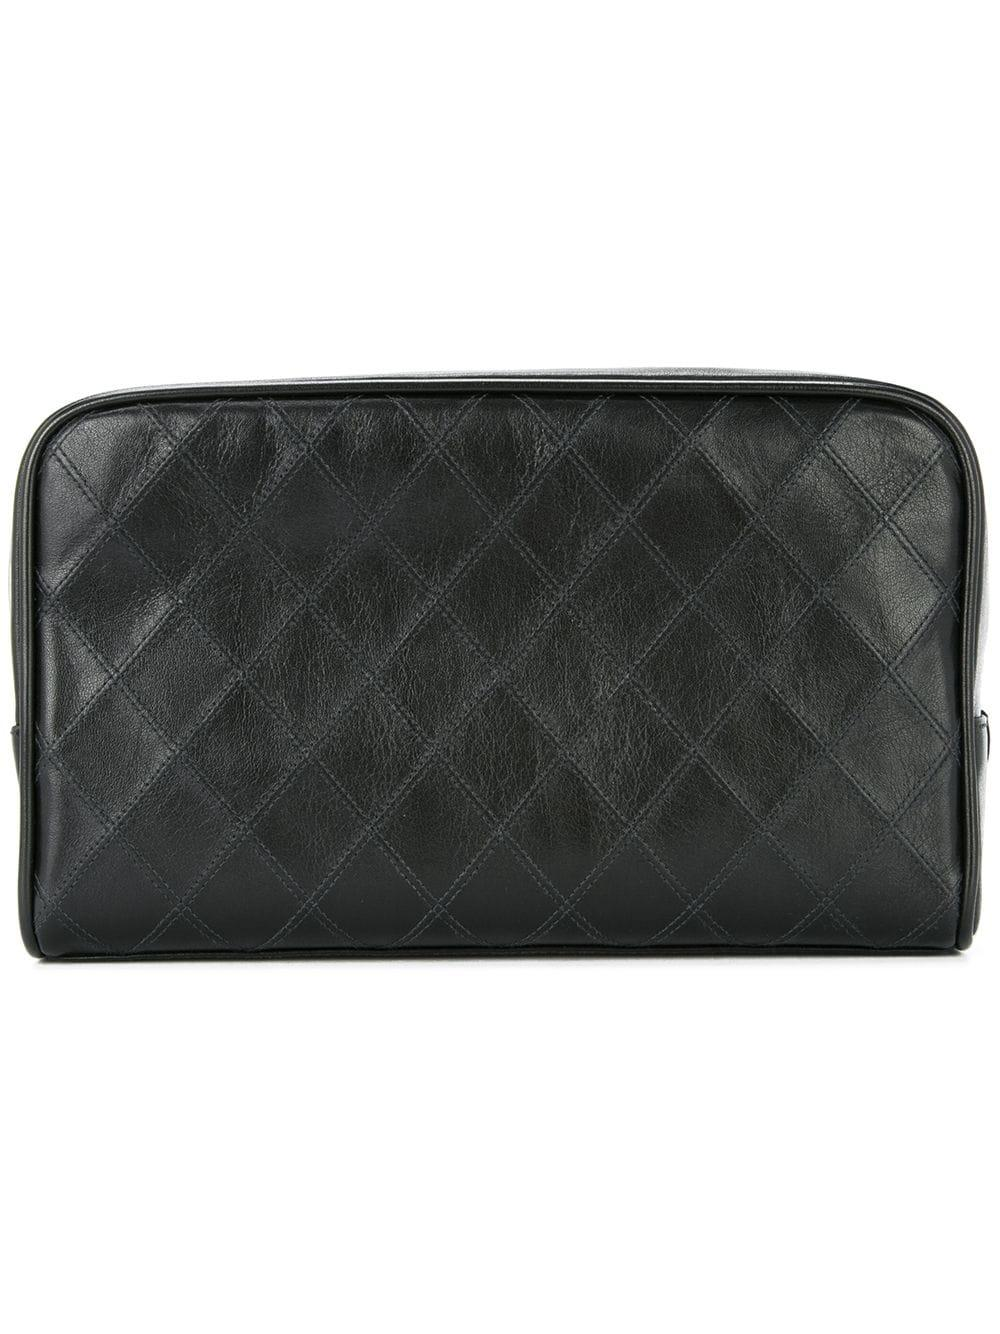 a5c51d88acdc3b Chanel Vintage Cosmos Line Quilted Cc Cosmetic Bag - Black | ModeSens